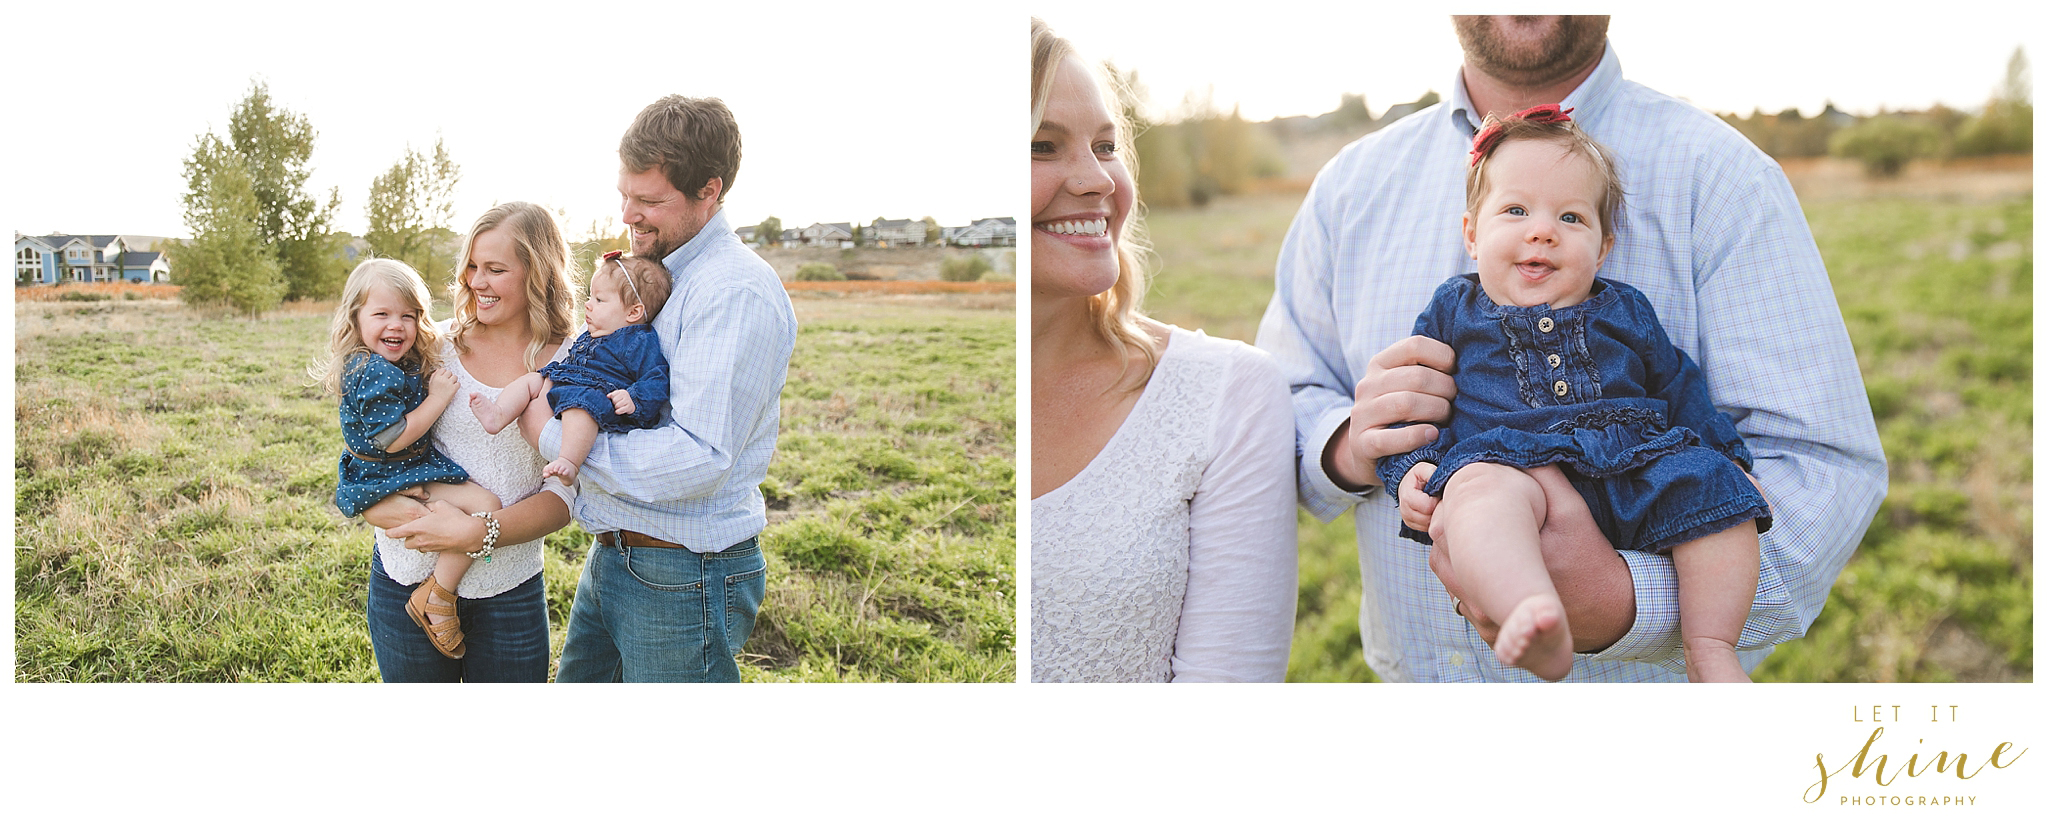 Boise Fall Family Photographer-4503.jpg